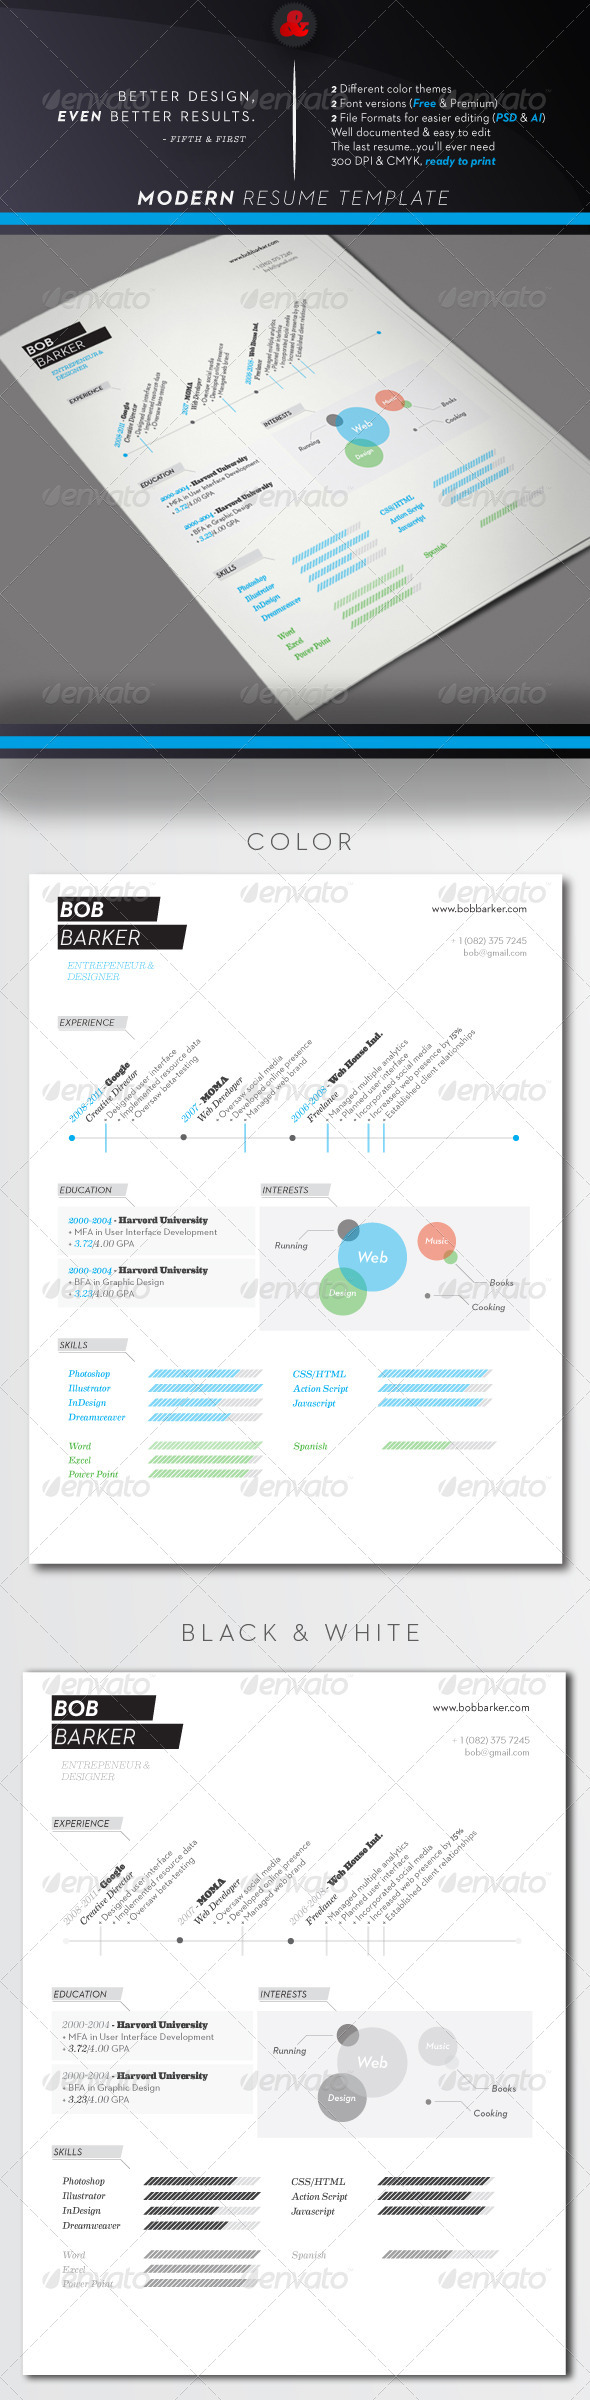 Graphic Design Cover Templates Images  Graphic Design Resume